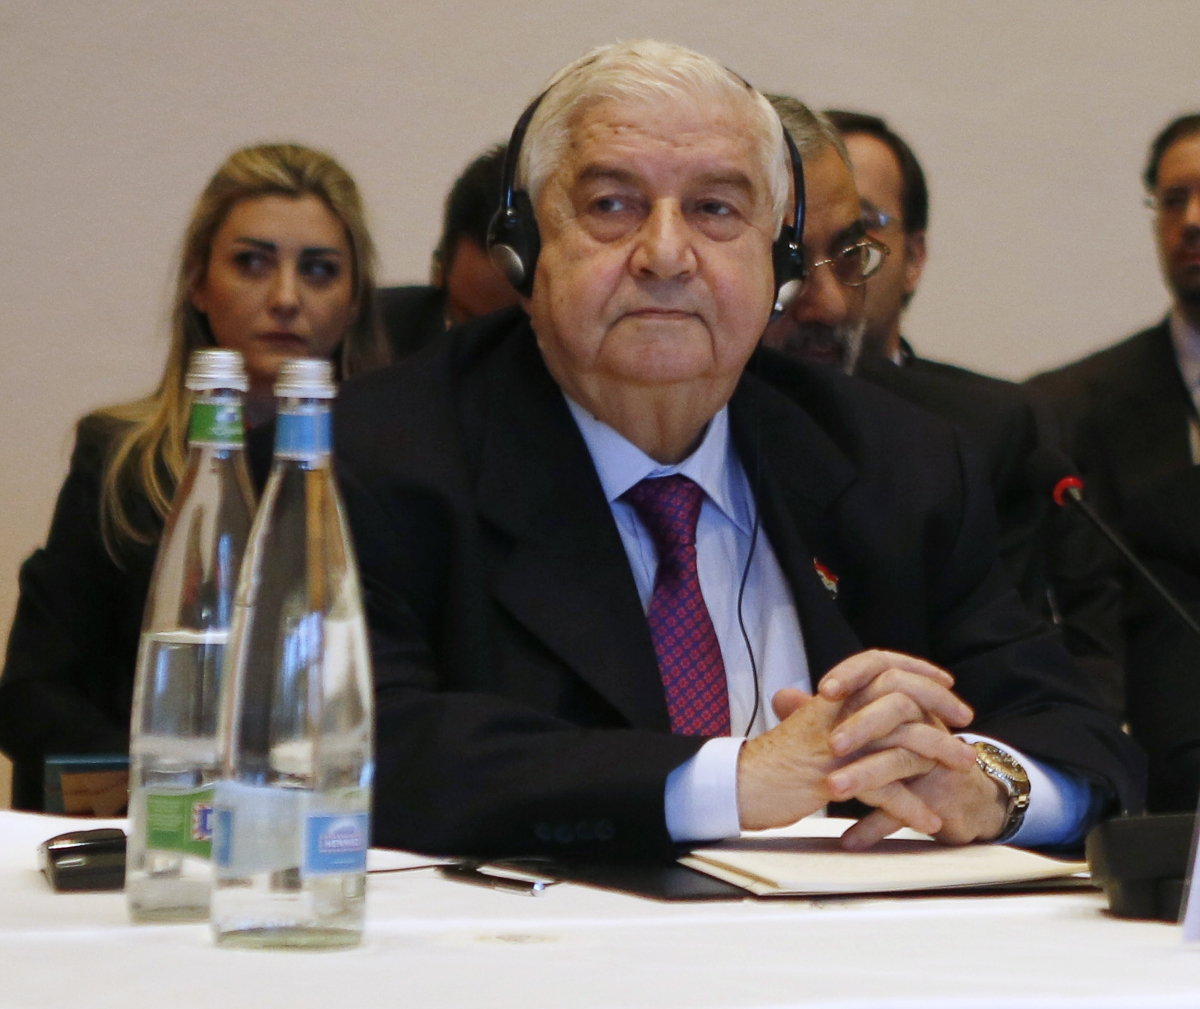 Syria's Foreign Minister Walid al-Moualem leads his delegation during a plenary session in Montreux